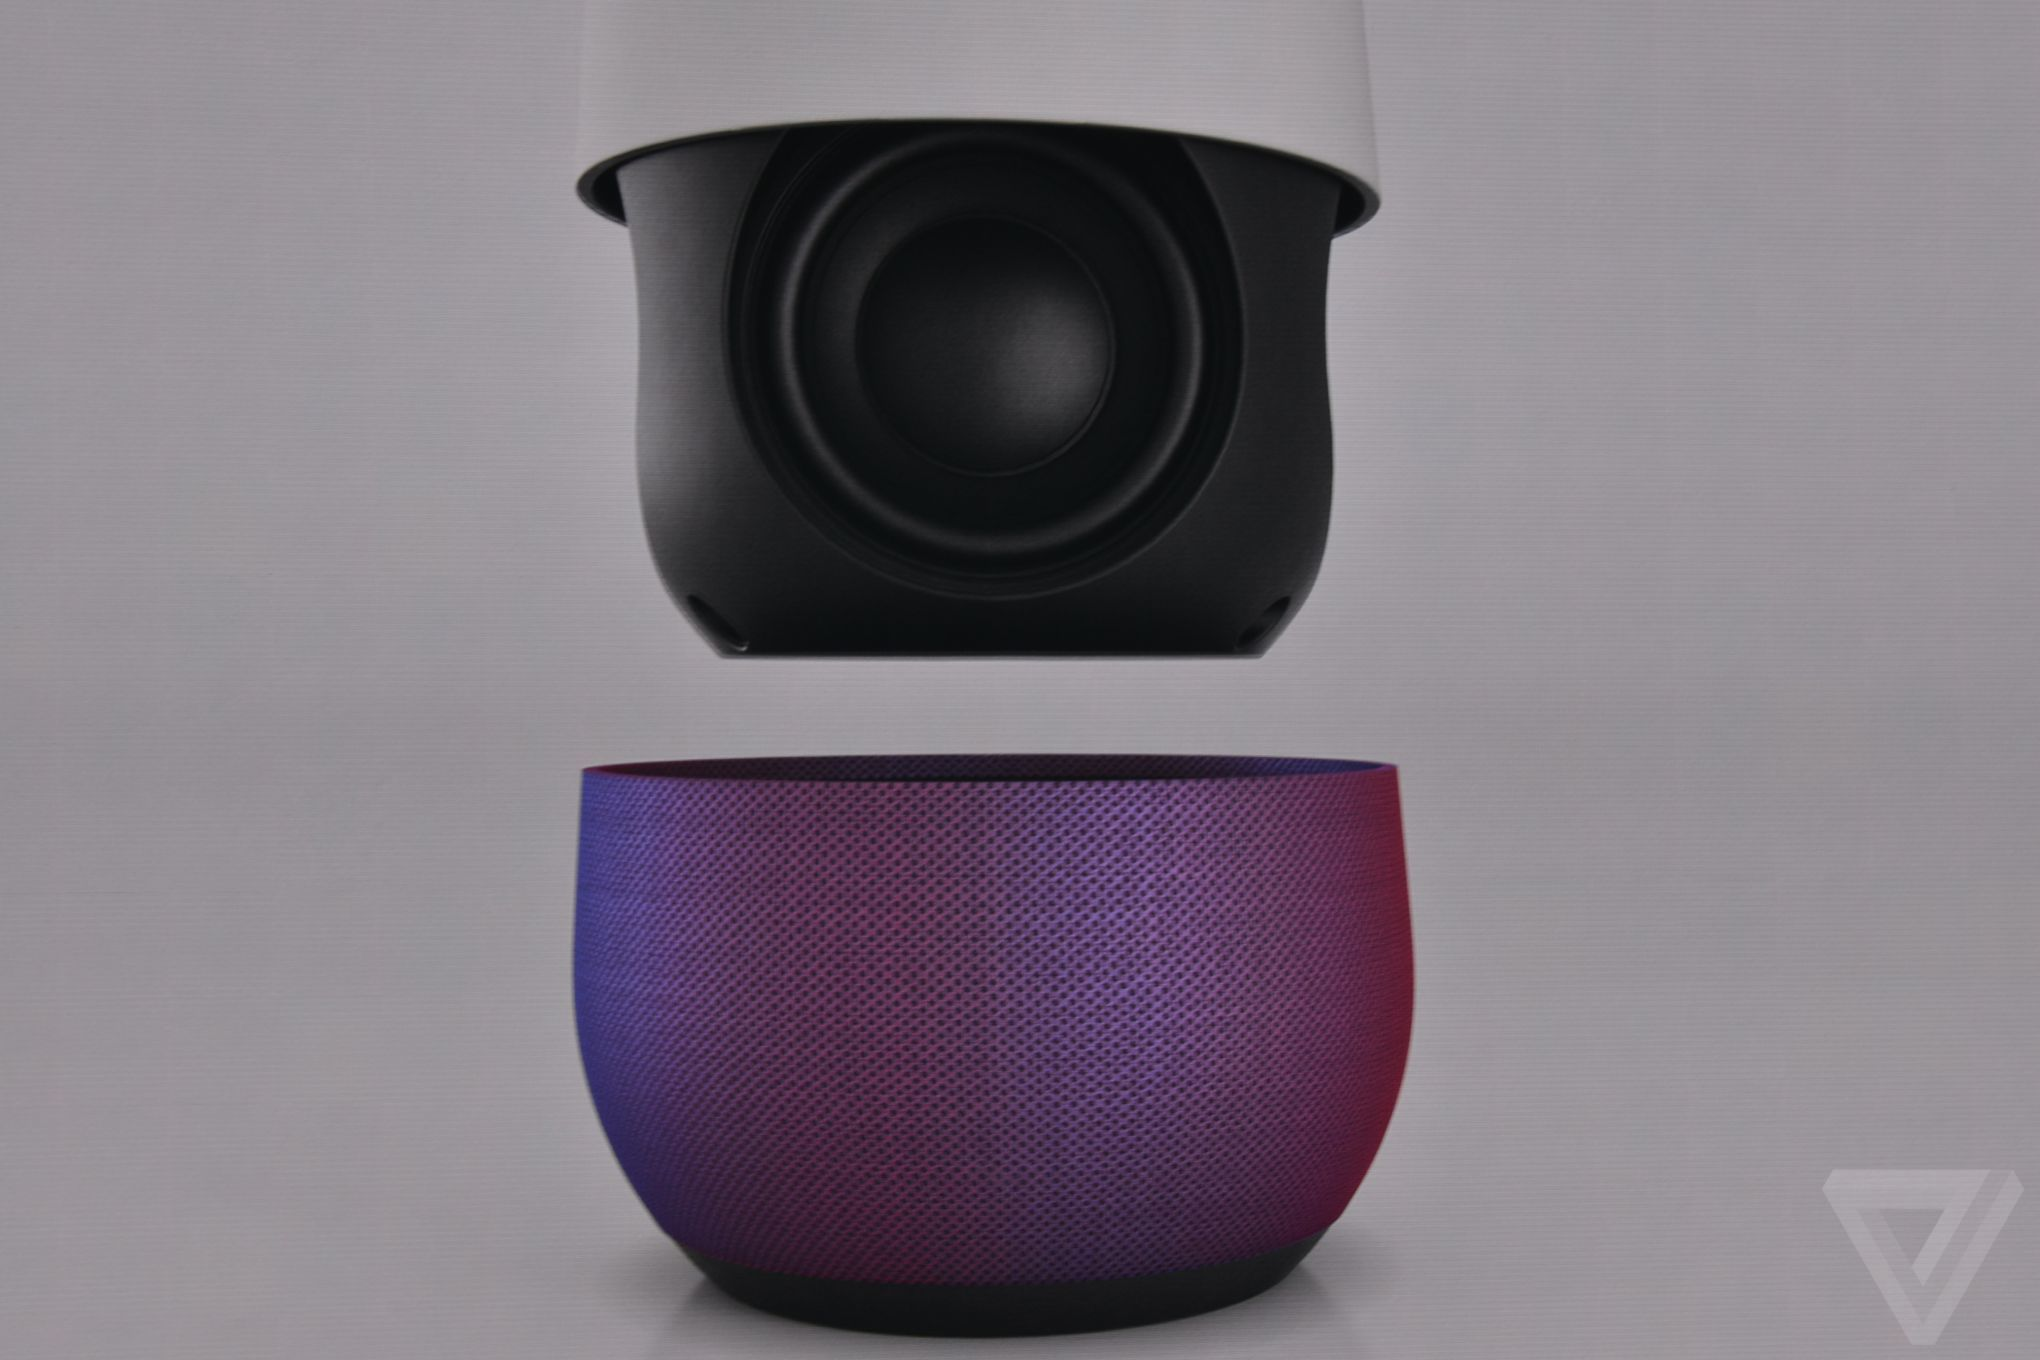 Google Home A Speaker To Finally Take On The Amazon Echo Verge Duplex Panel This Controller Includes Circuit Breakers And Cat7 Control Some Of Your Automation Gadgets Hear Queiroz Tell It Will Be Better At Most Those Things Than